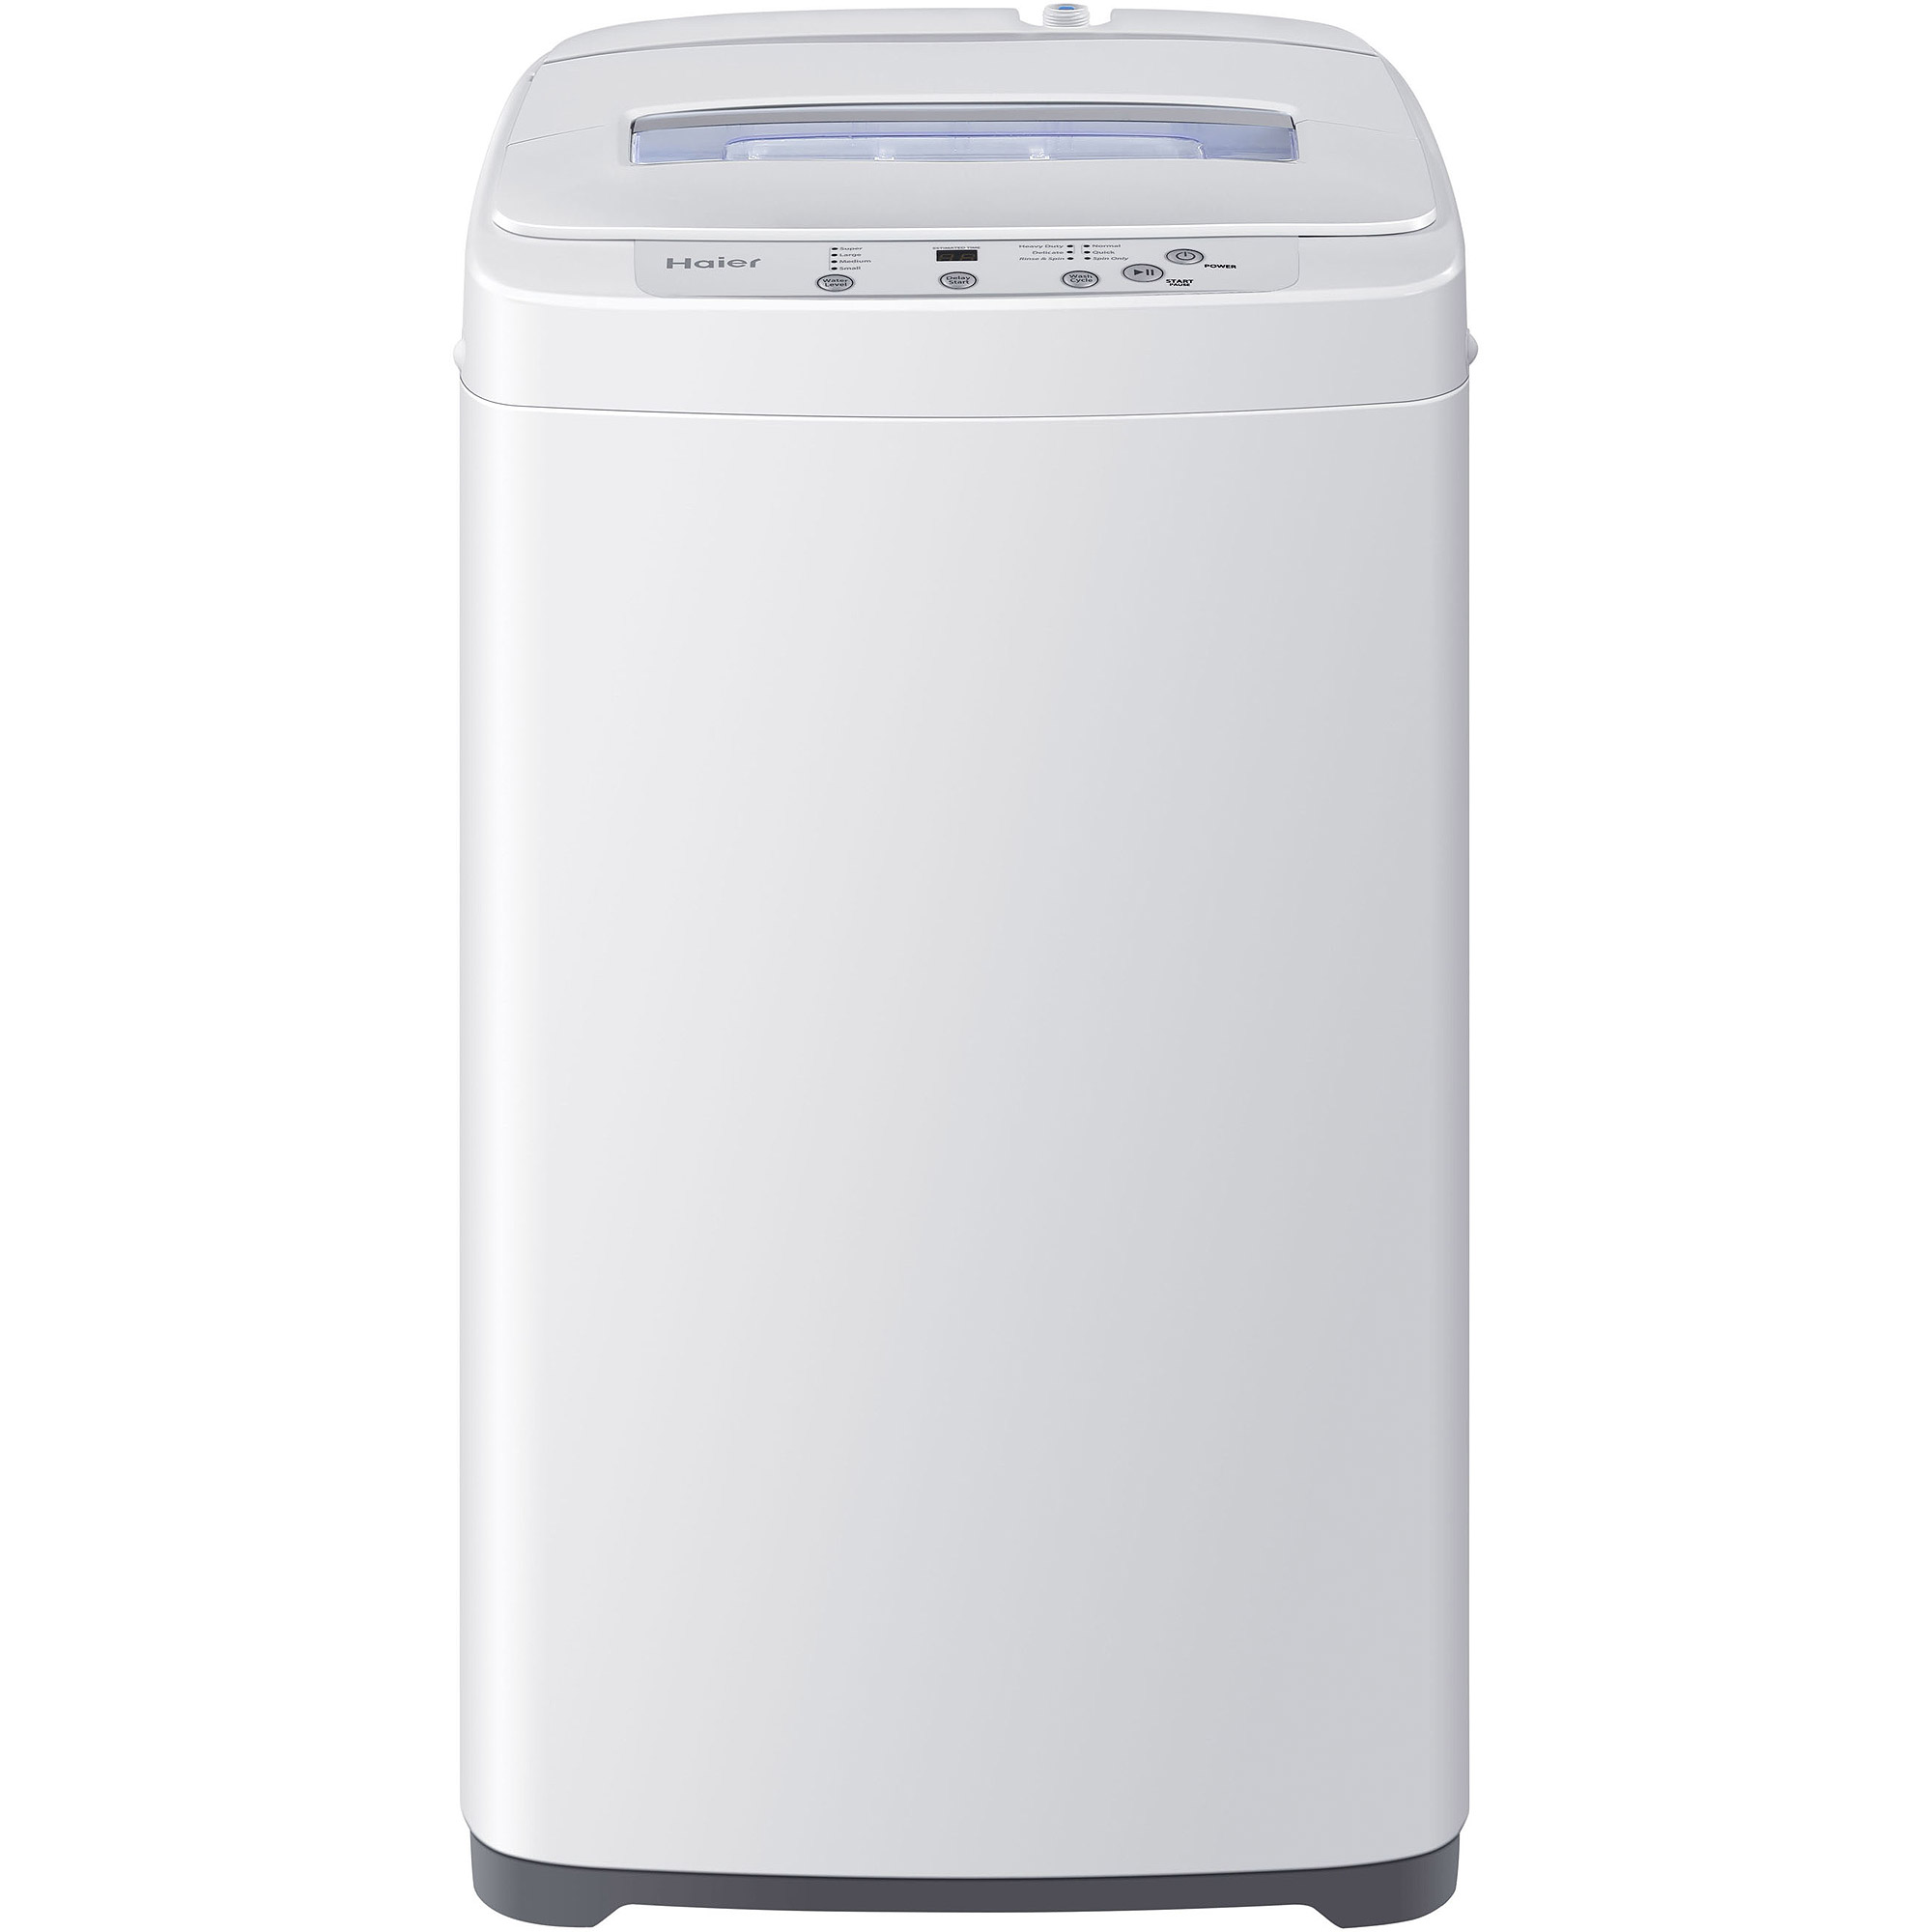 Haier 1 5 Cu Ft Portable Washer